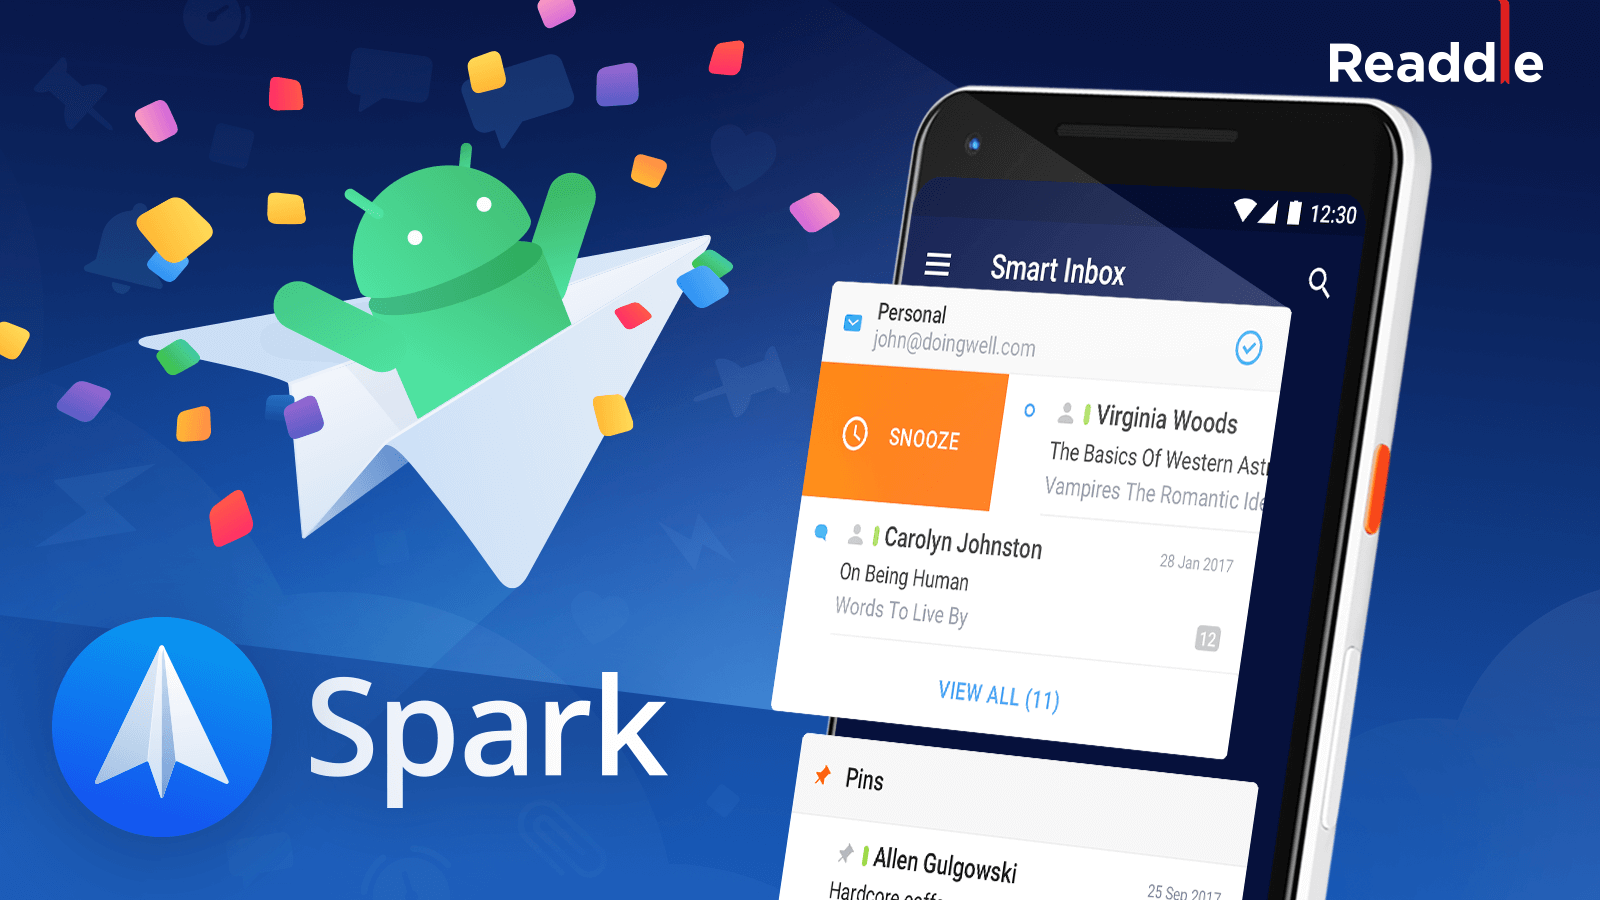 12f6ad52801 Spark for Android: Readdle's take on the Future of Email